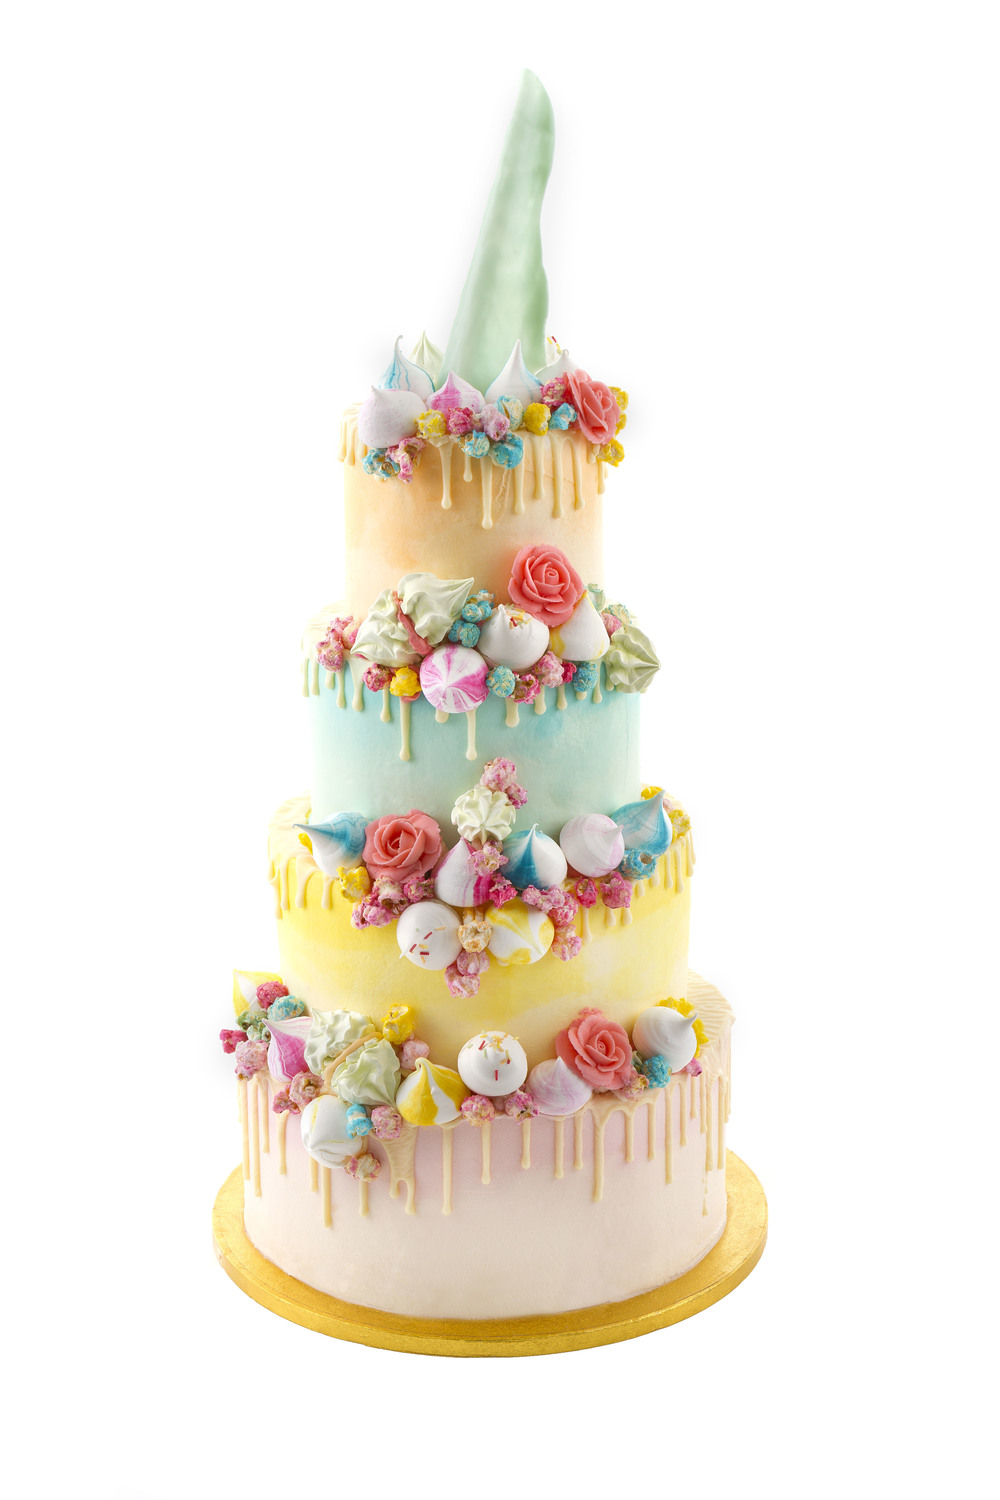 Add piped buttercream roses for a whimsical rainbow effect.